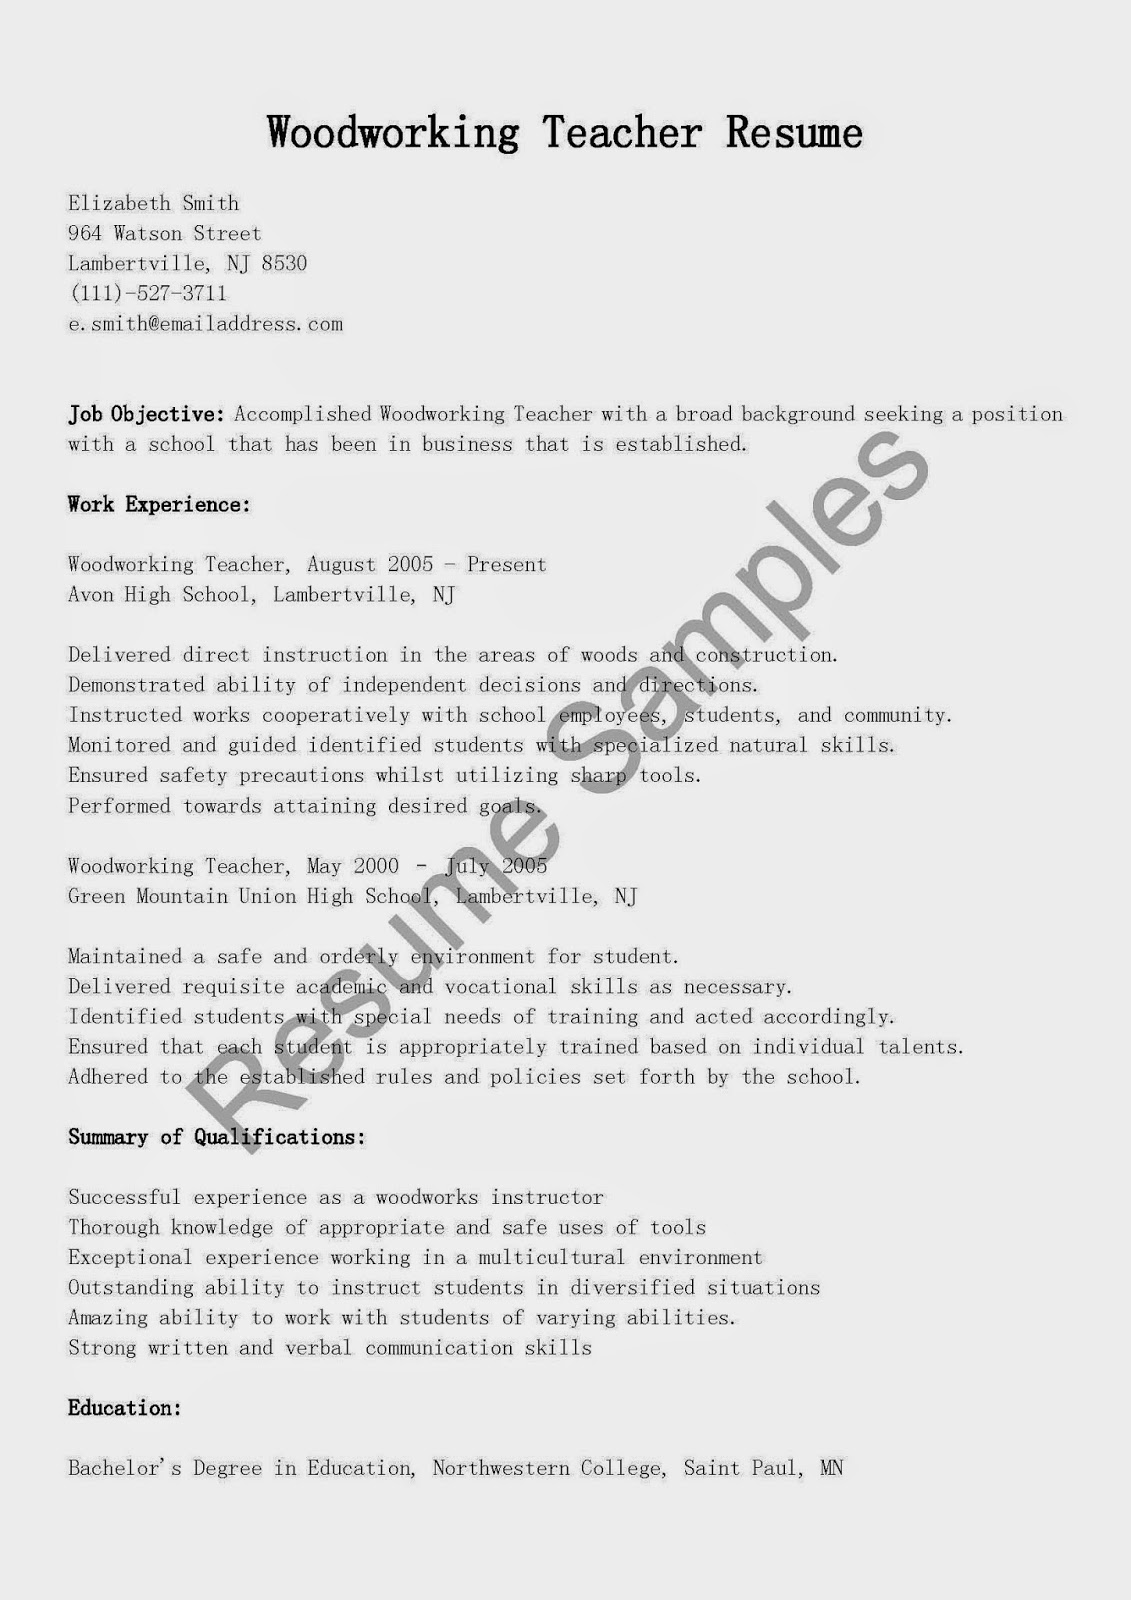 Resume Samples Woodworking Teacher Resume Sample